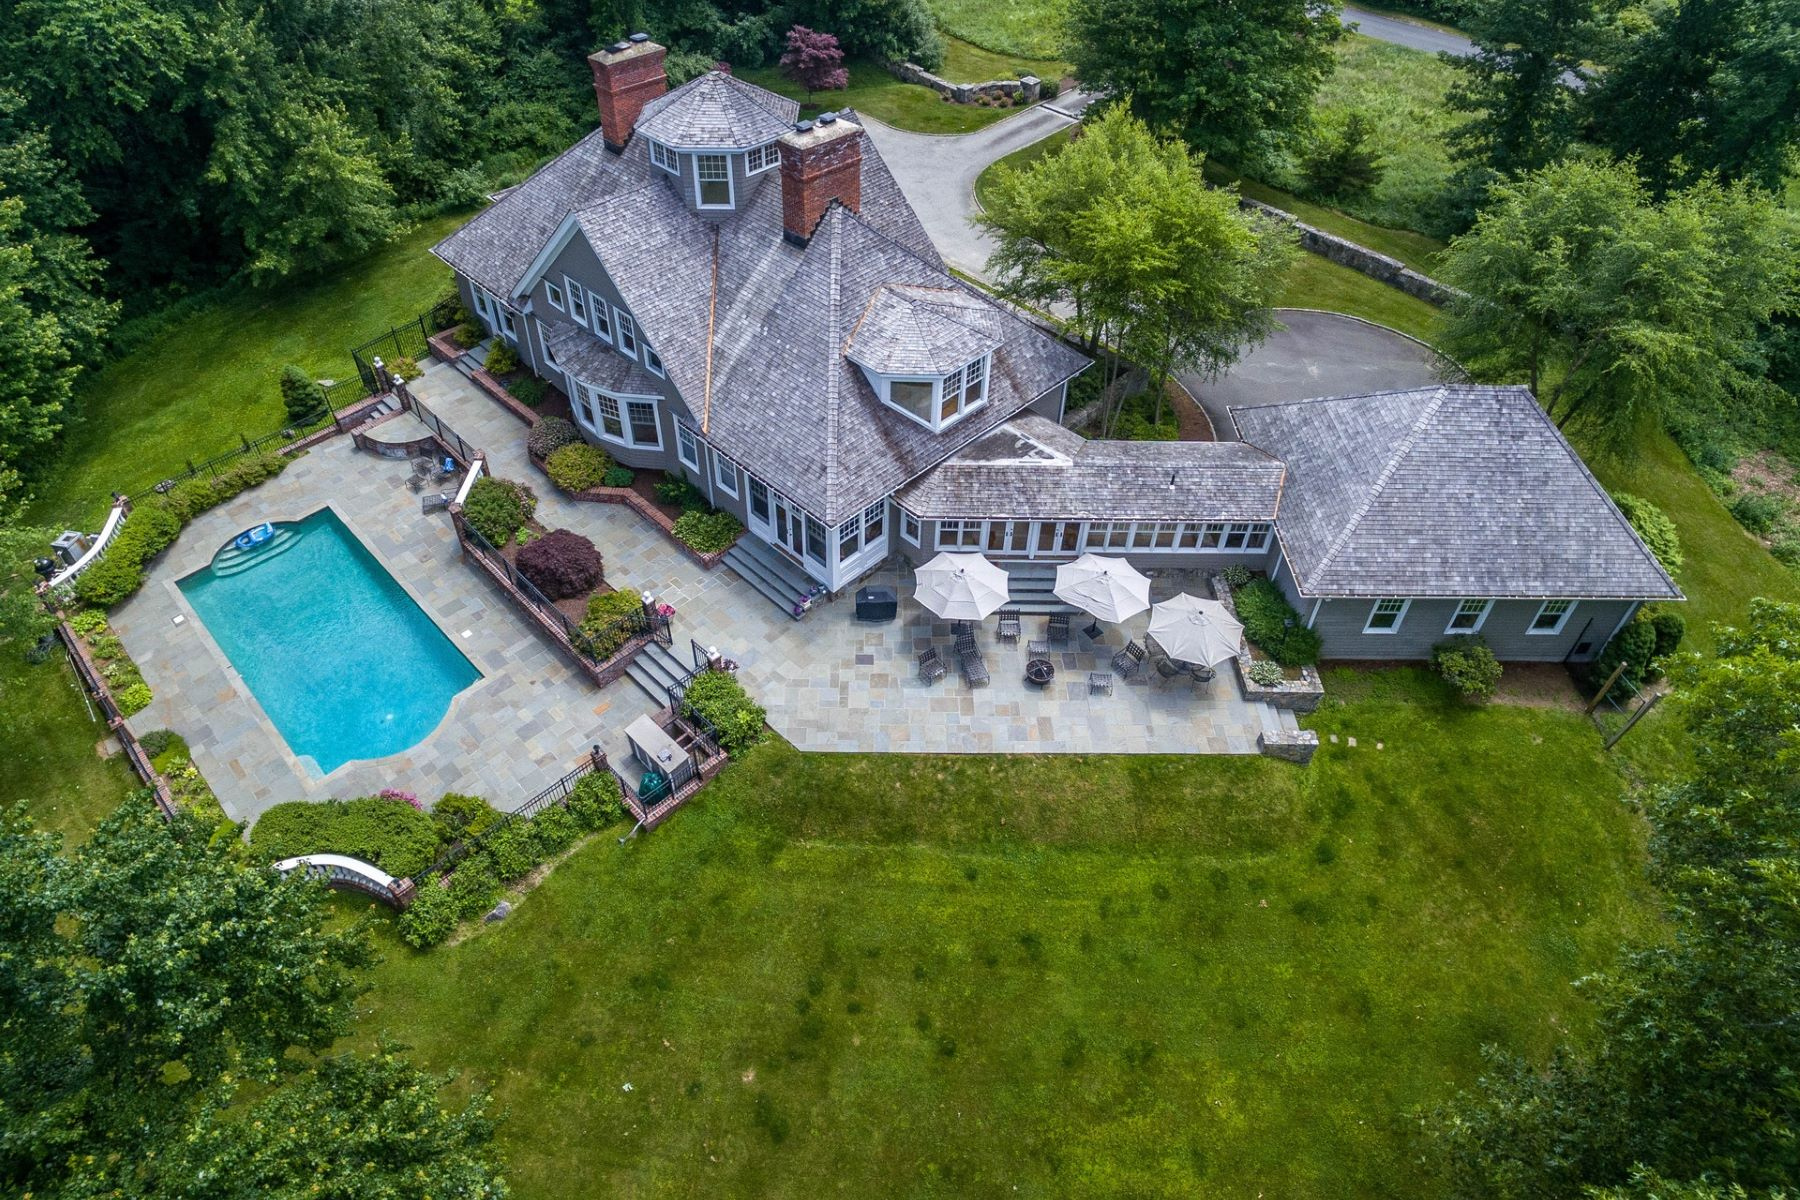 Single Family Home for Sale at CUSTOM COLONIAL 1 Meadows Edge Redding, Connecticut 06896 United States